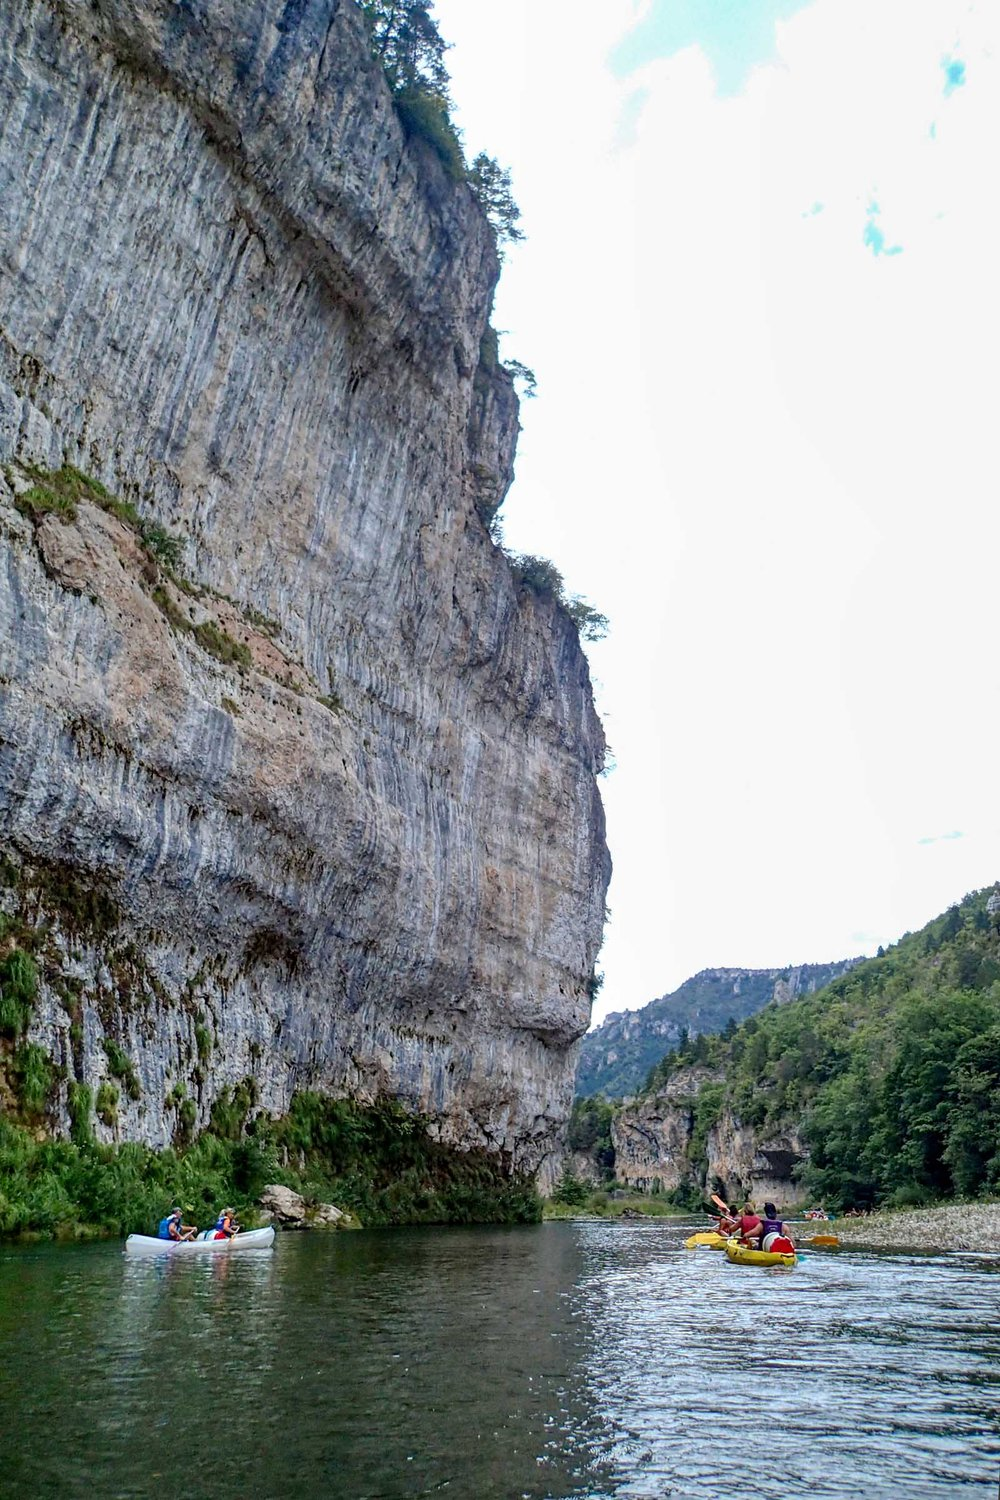 Copy of Canoeing in the Gorges du Tarn